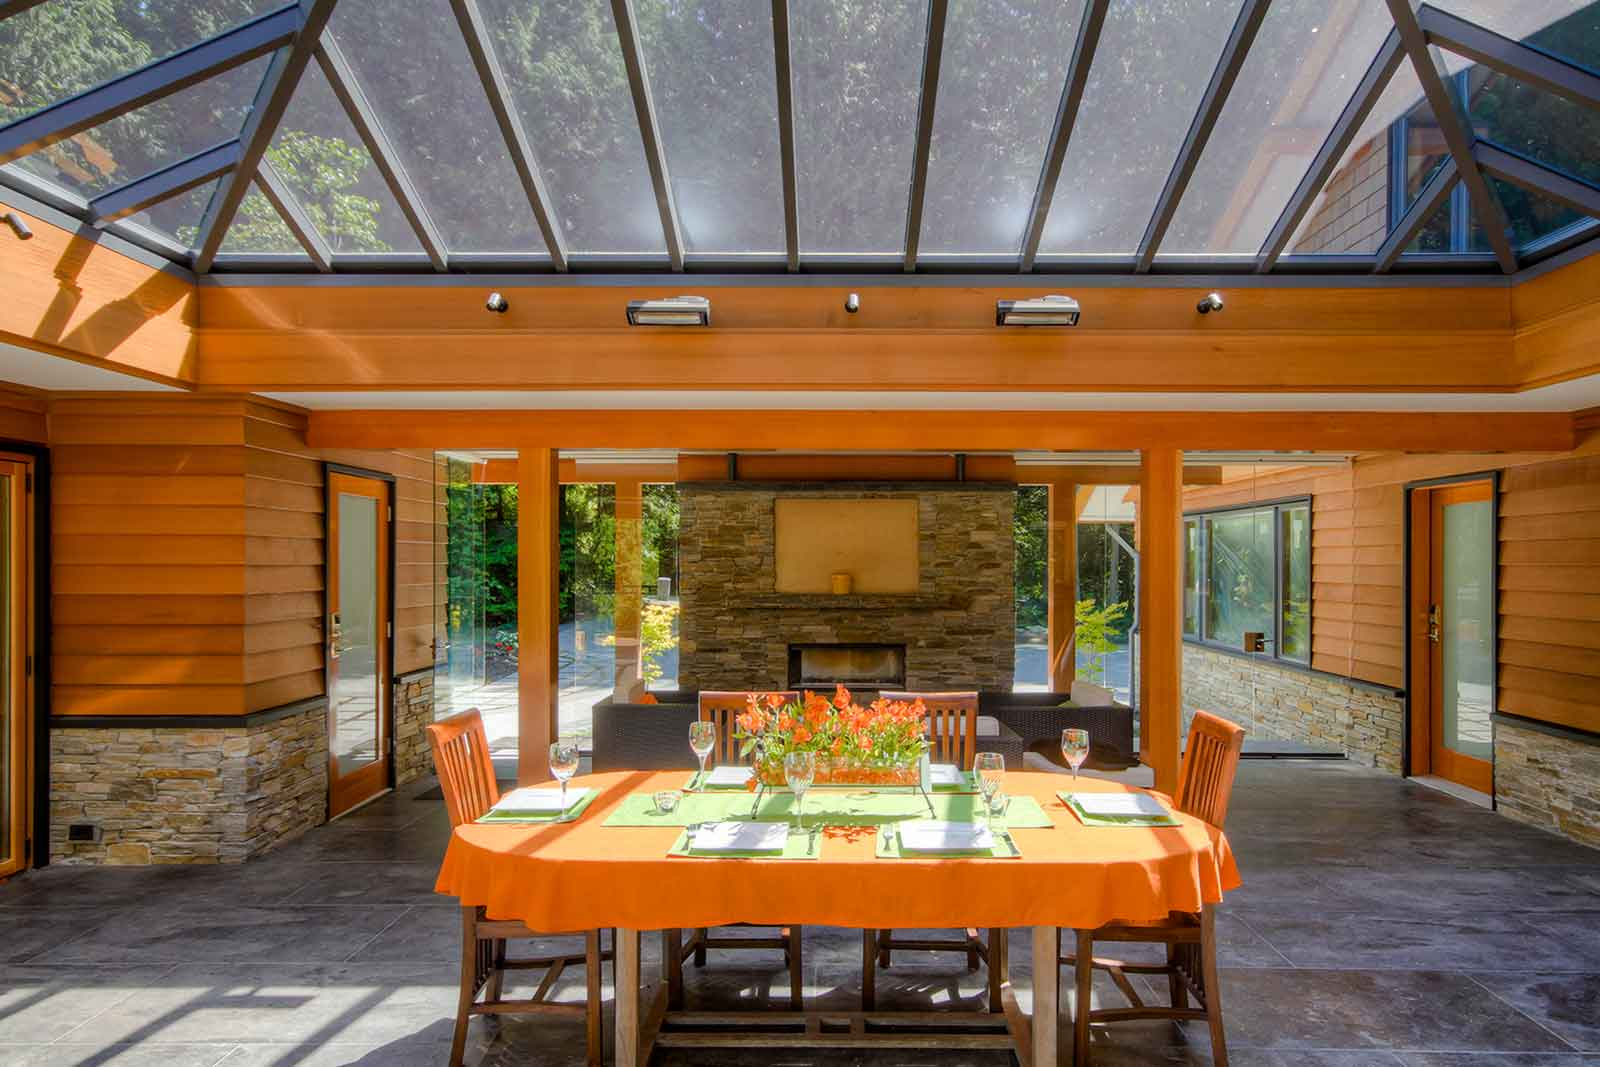 Covered outdoor dining area with wood beams